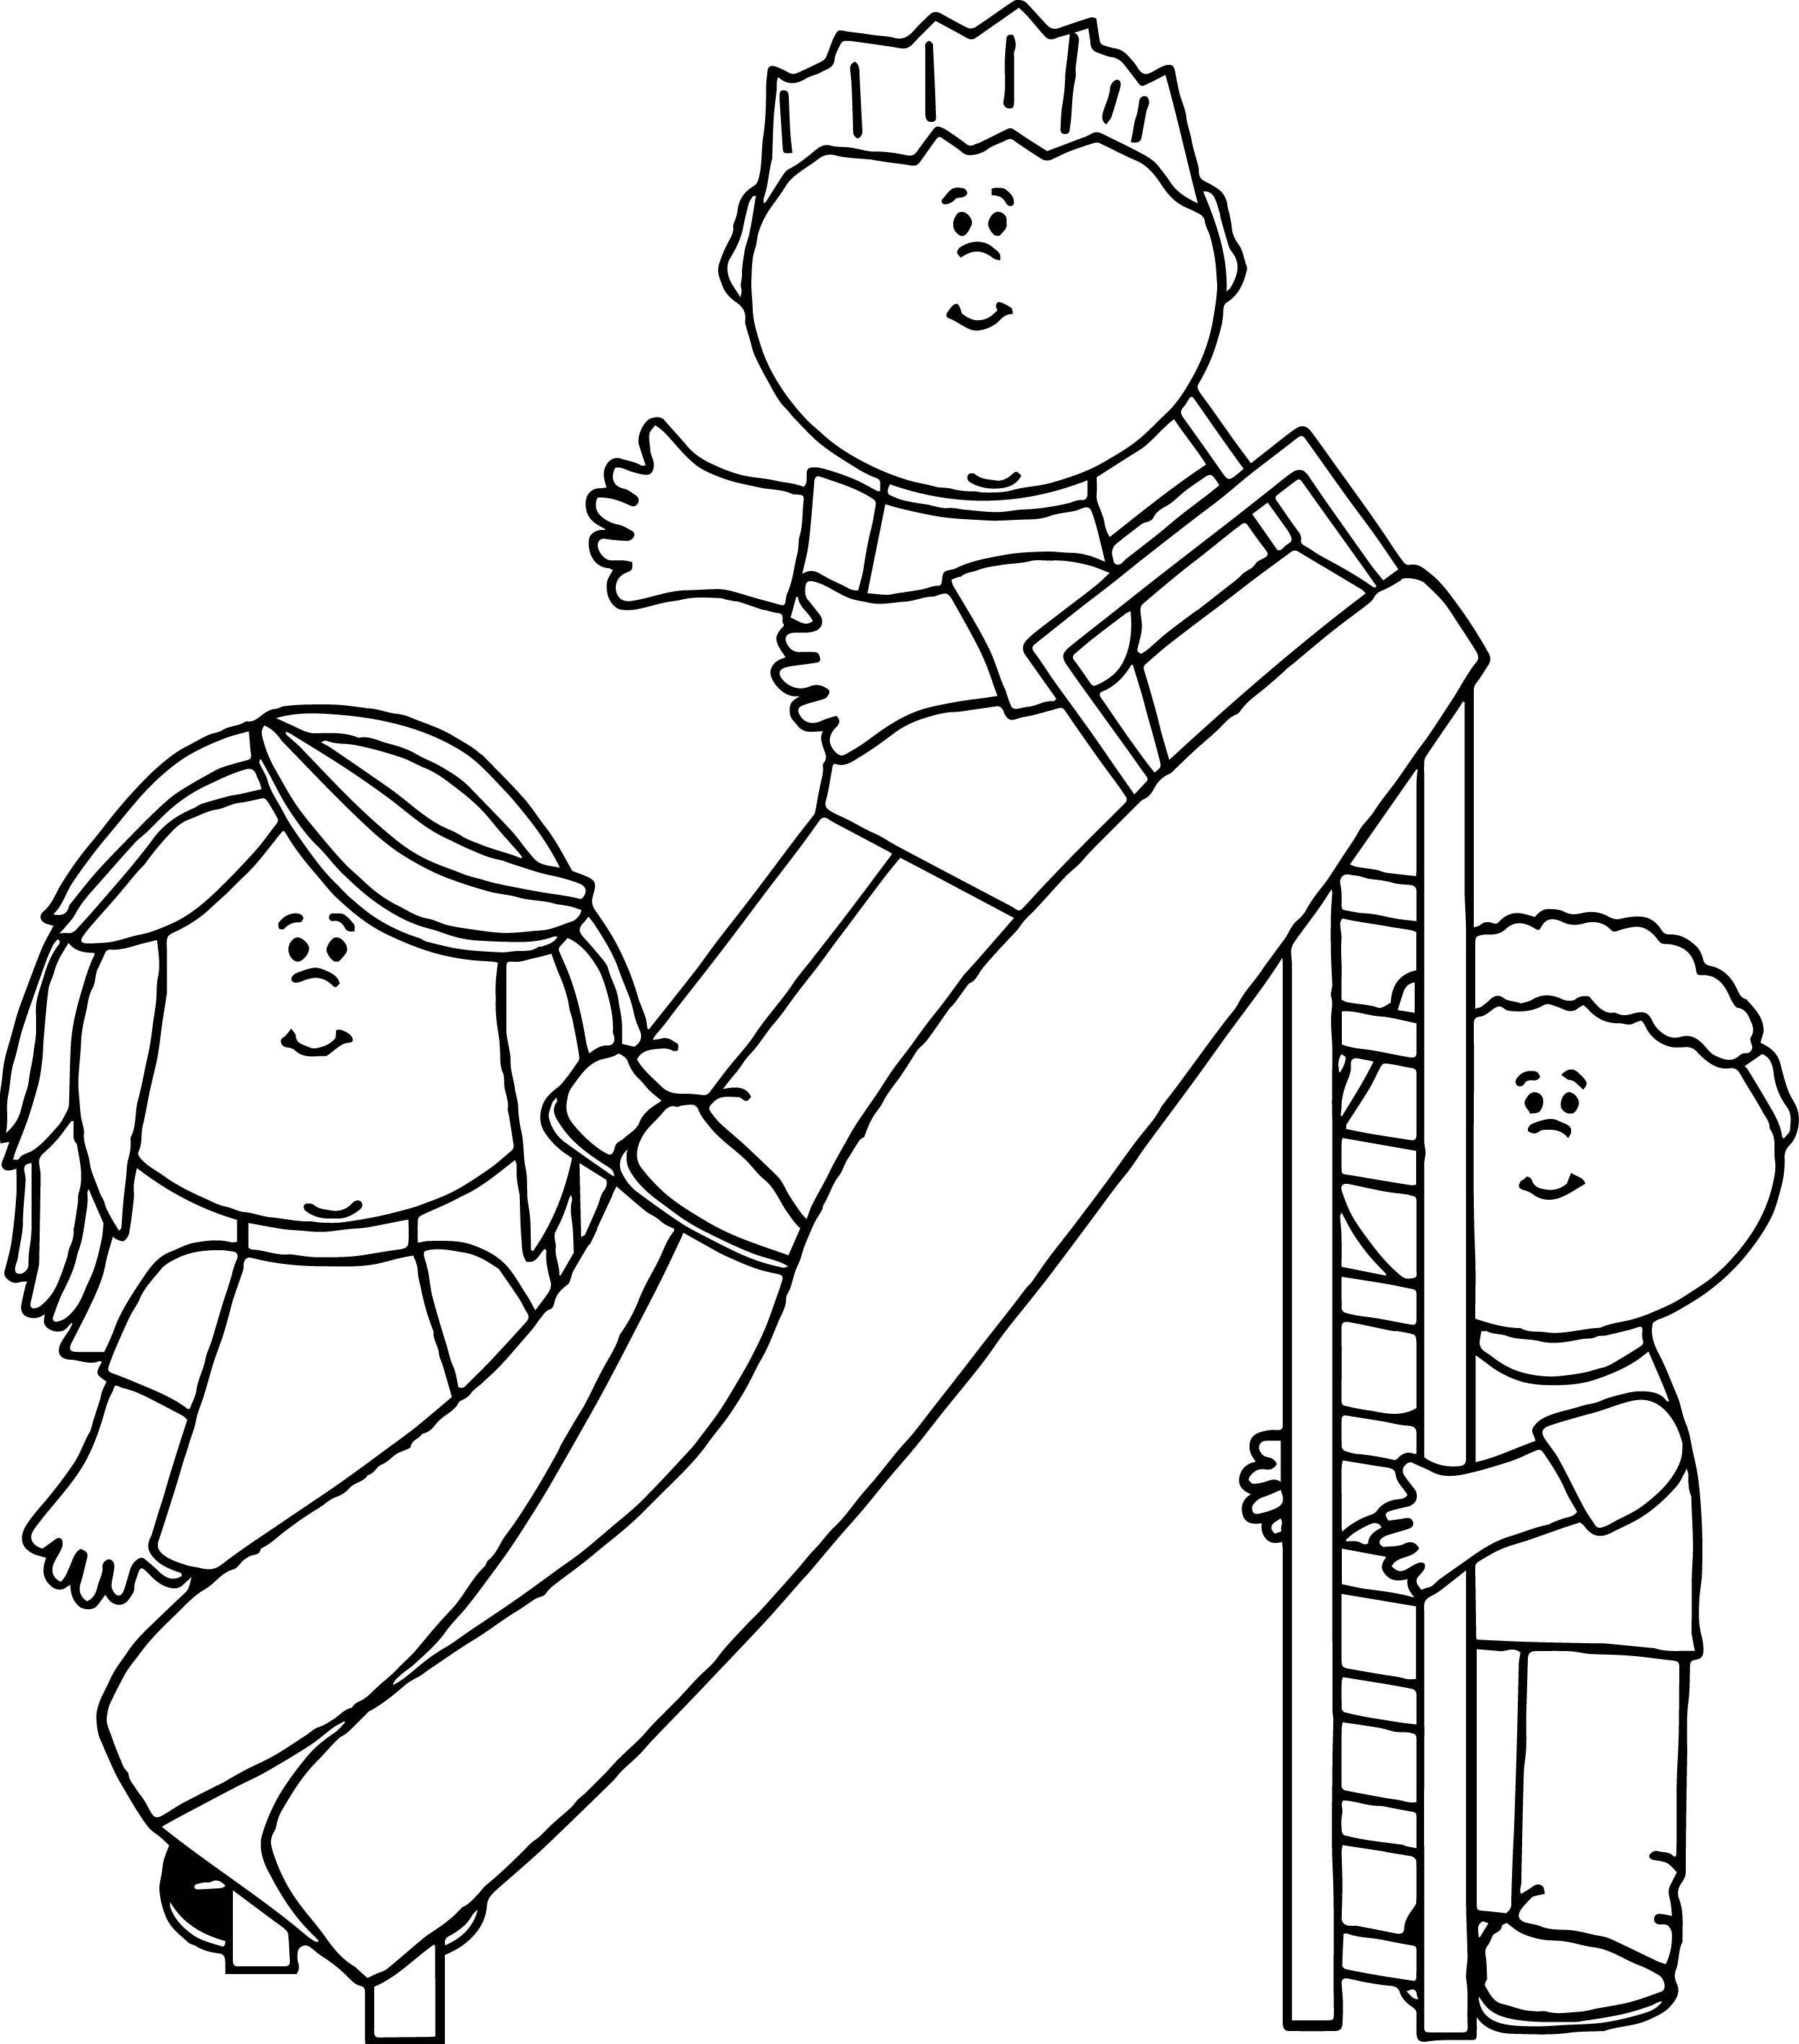 Kids in the park coloring page for Art is fun coloring pages